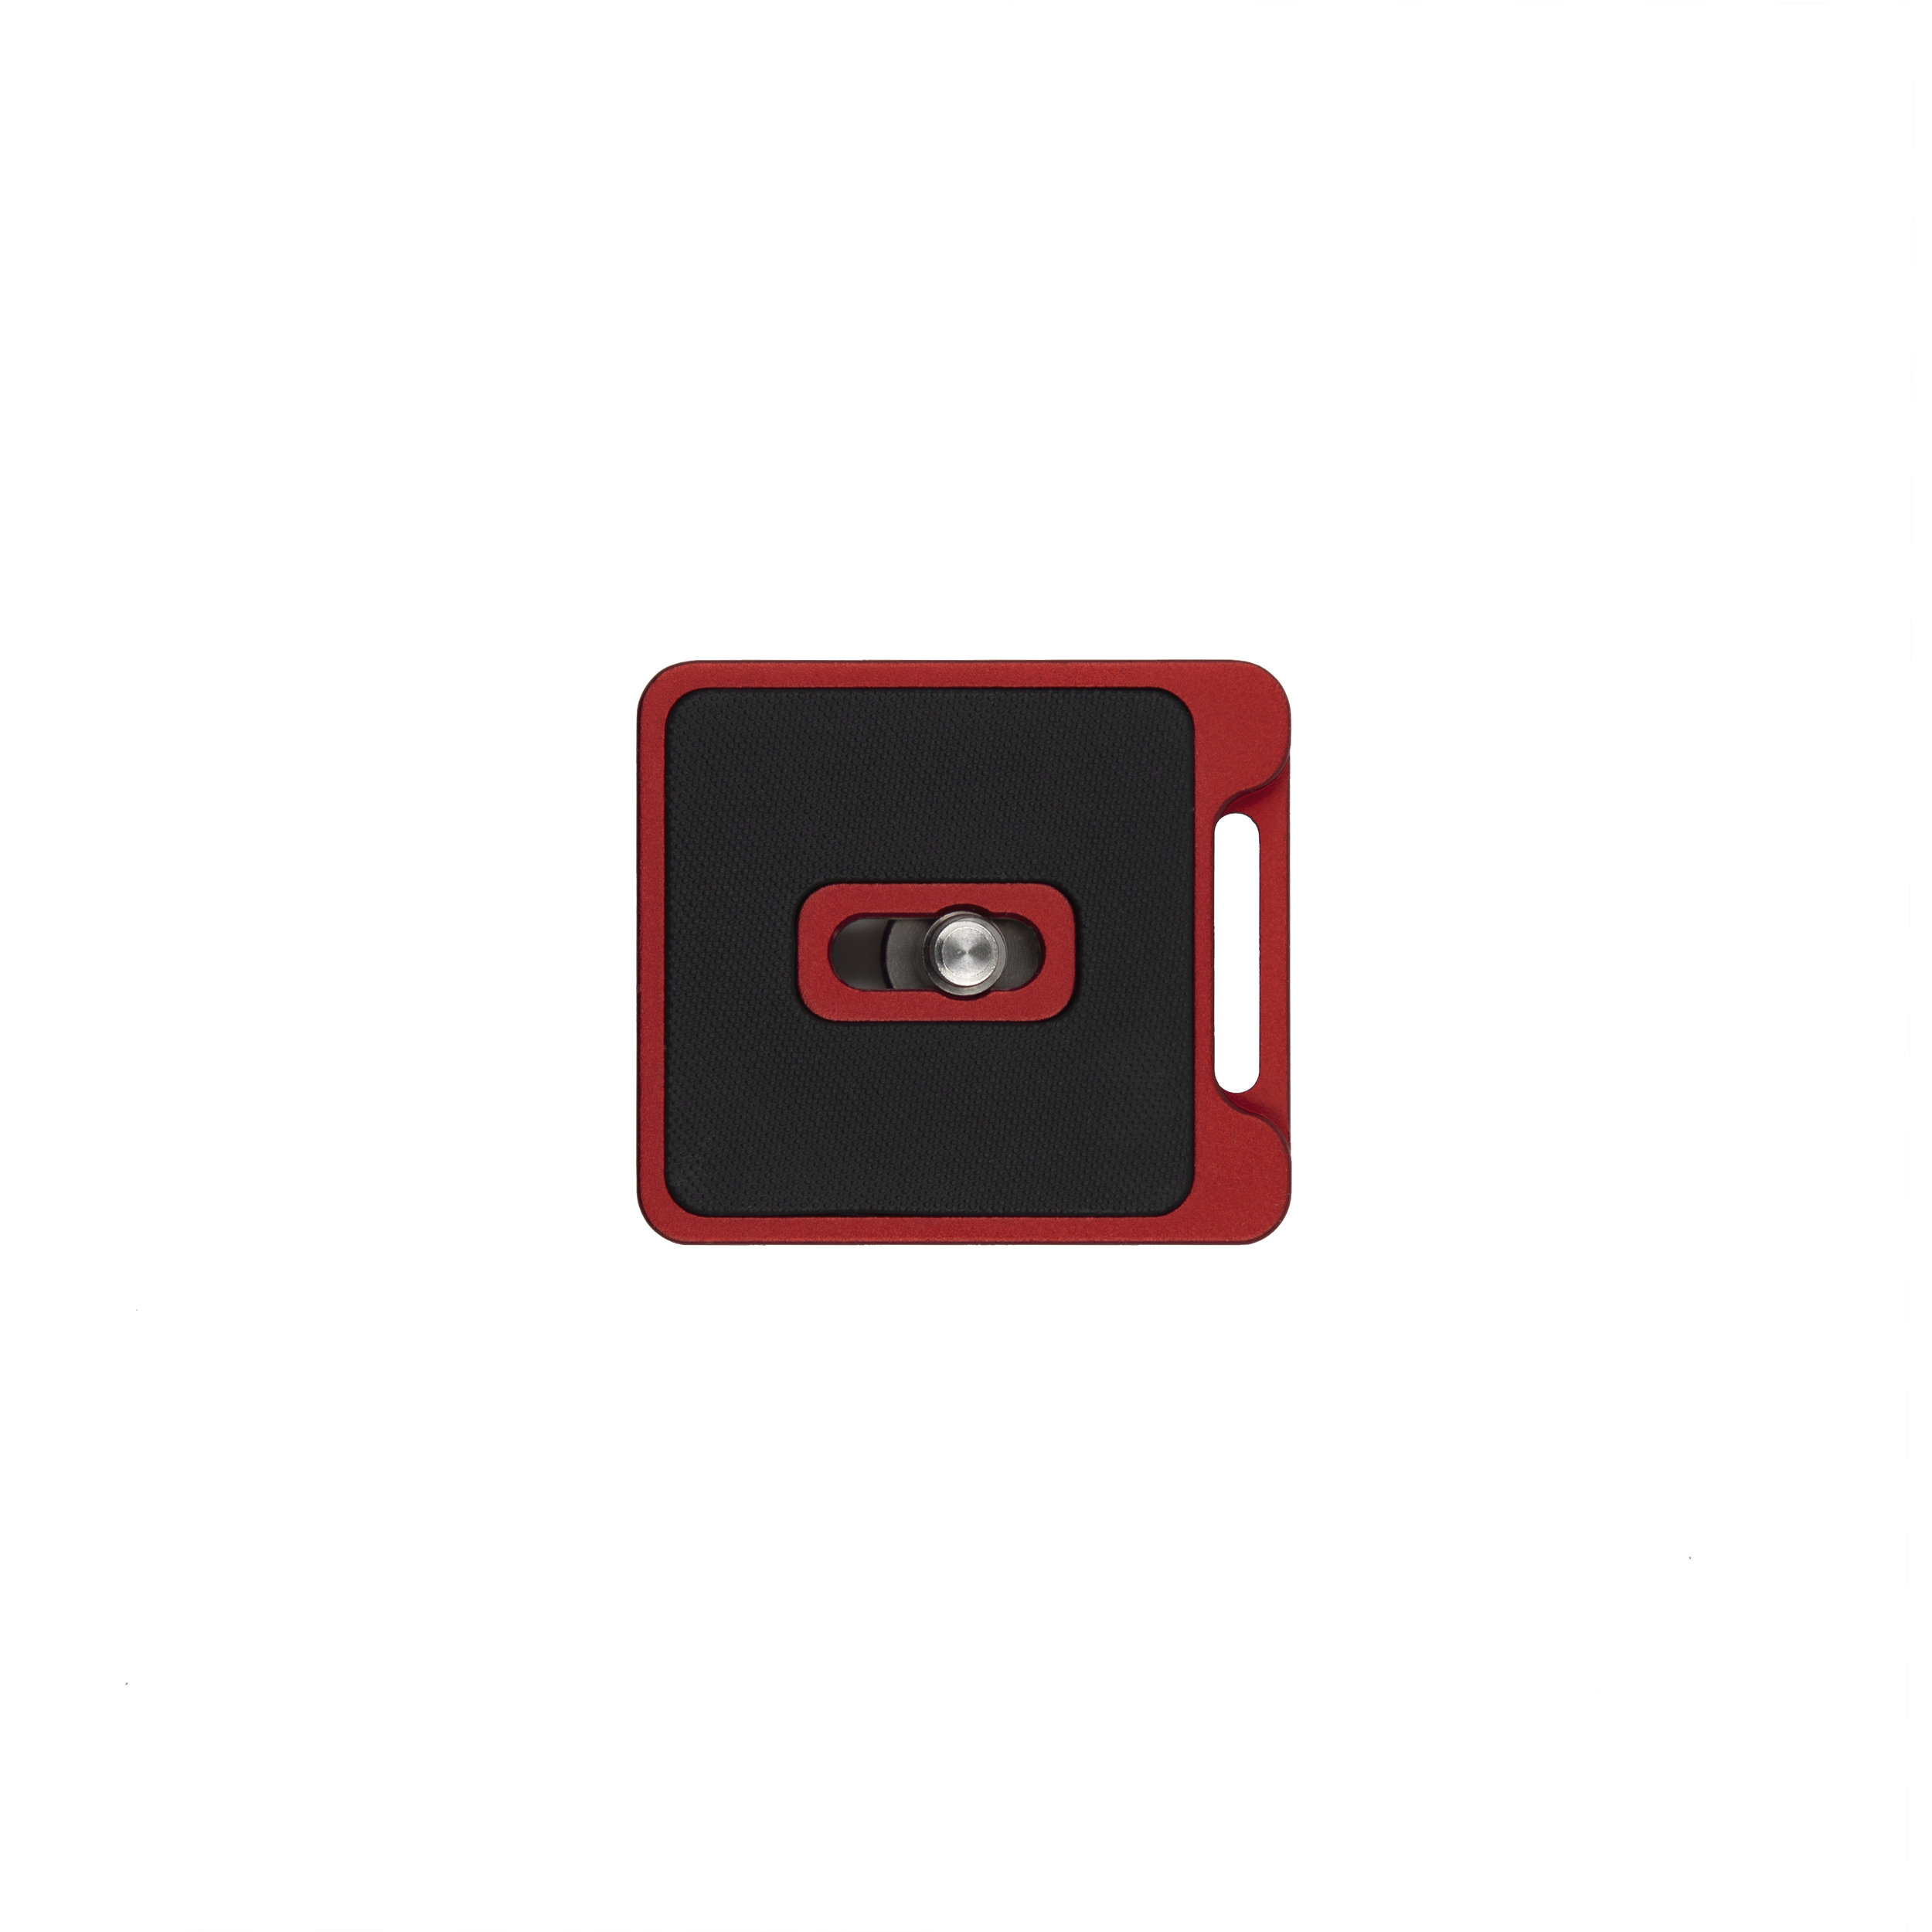 XC-MH QUICK RELEASE PLATE - RED   $19.95